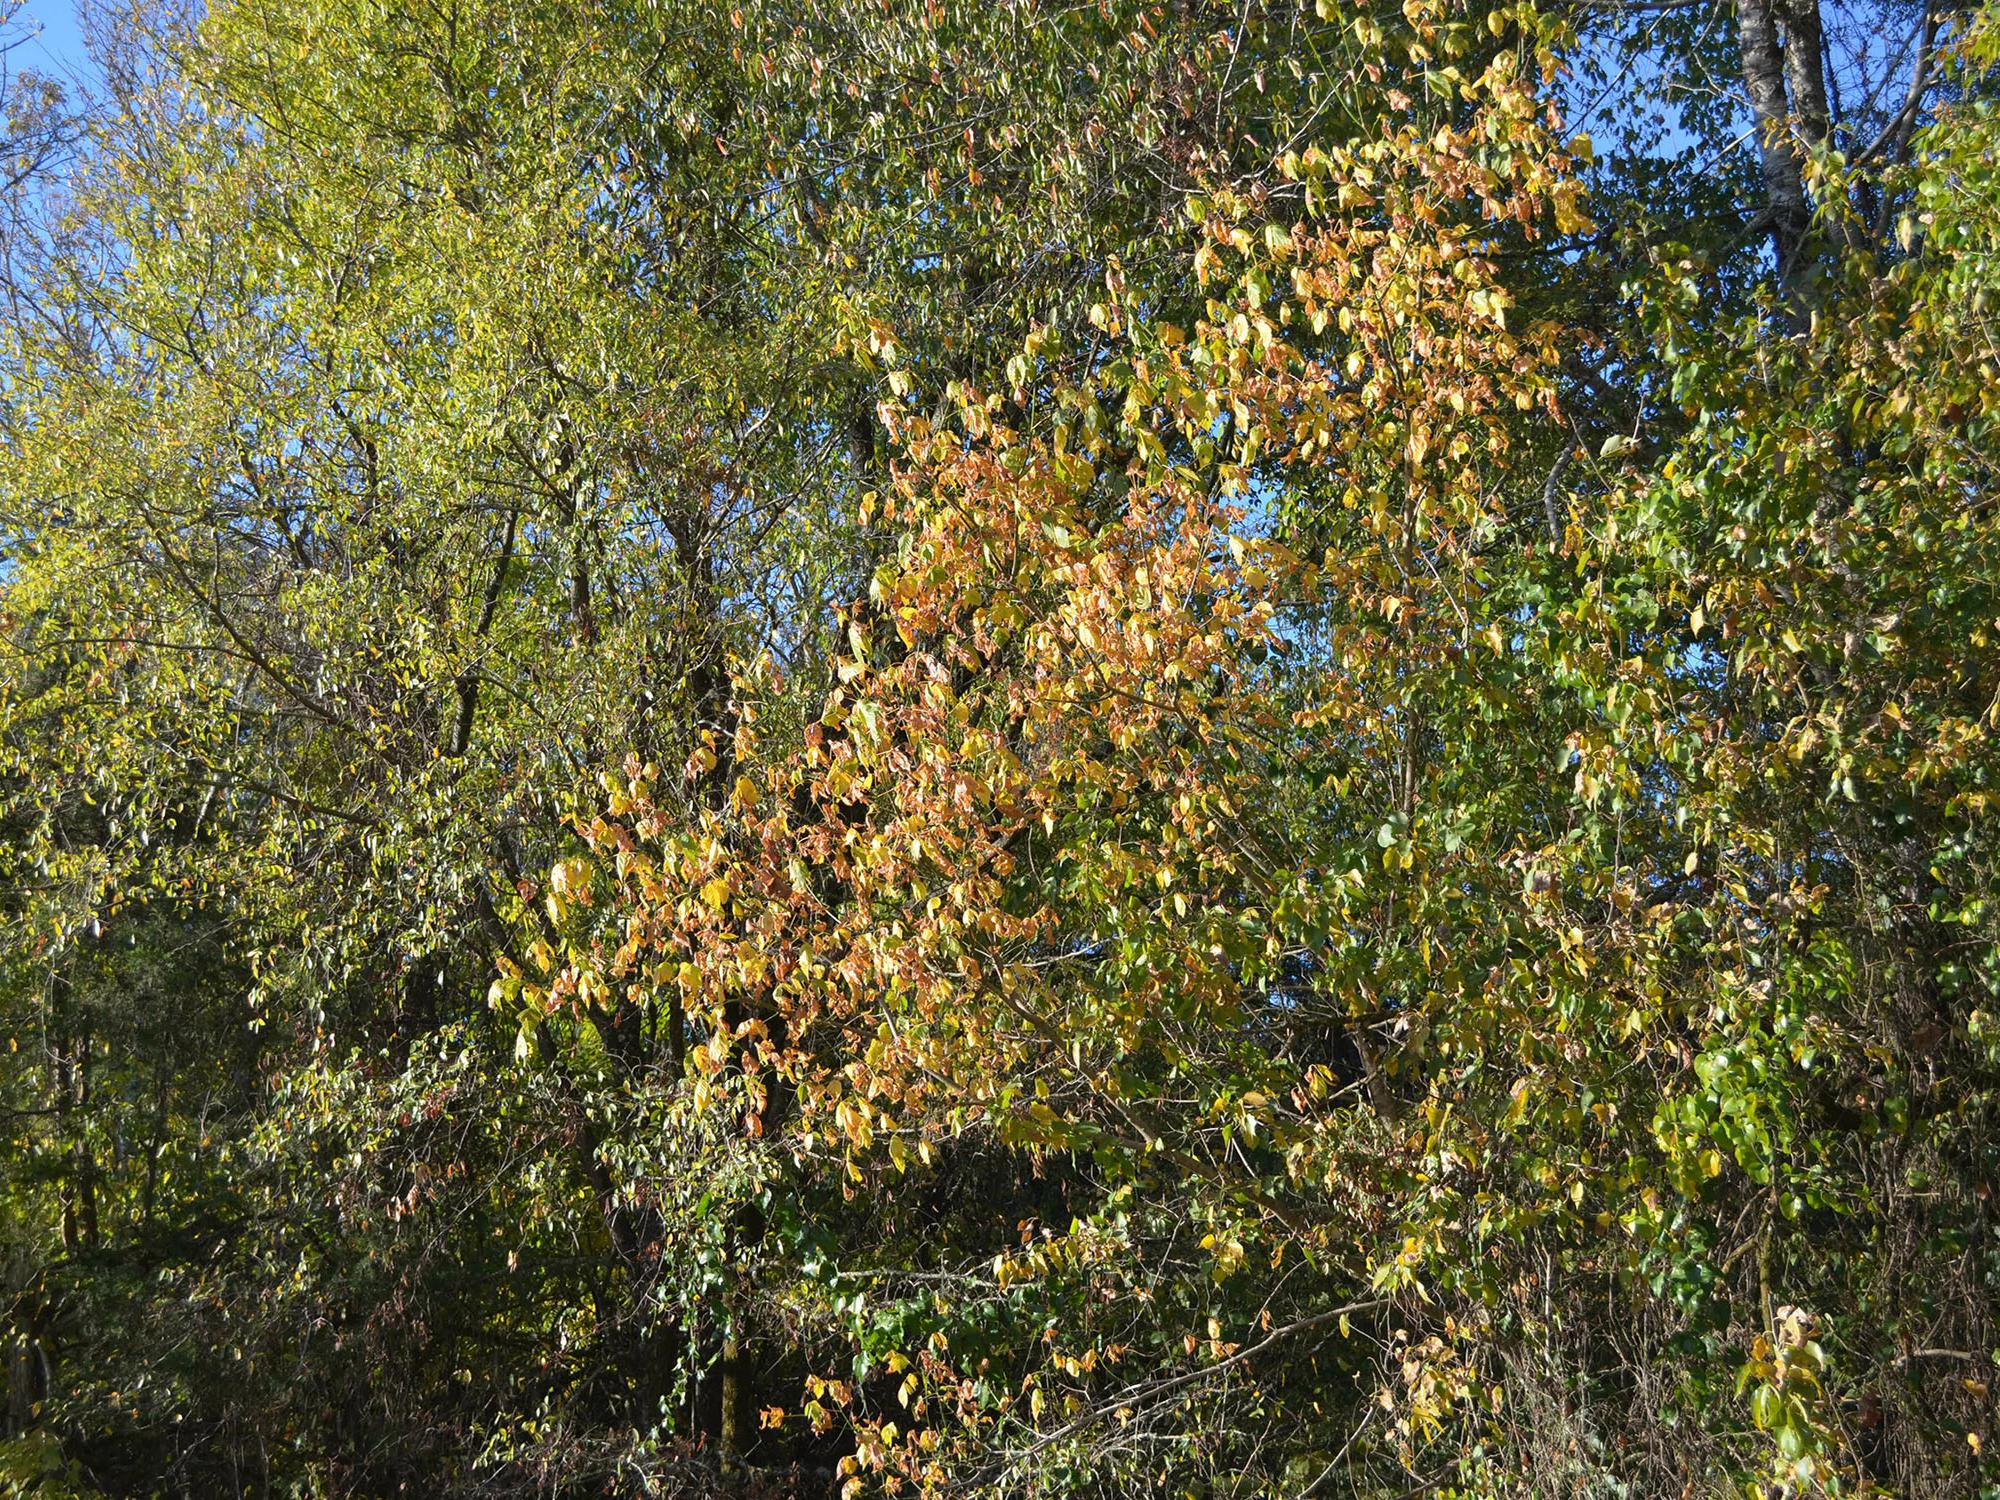 Mississippi foliage is just beginning to change to fall colors in Oktibbeha County on Oct. 12, 2016. (Photo by MSU Extension Service/Linda Breazeale)